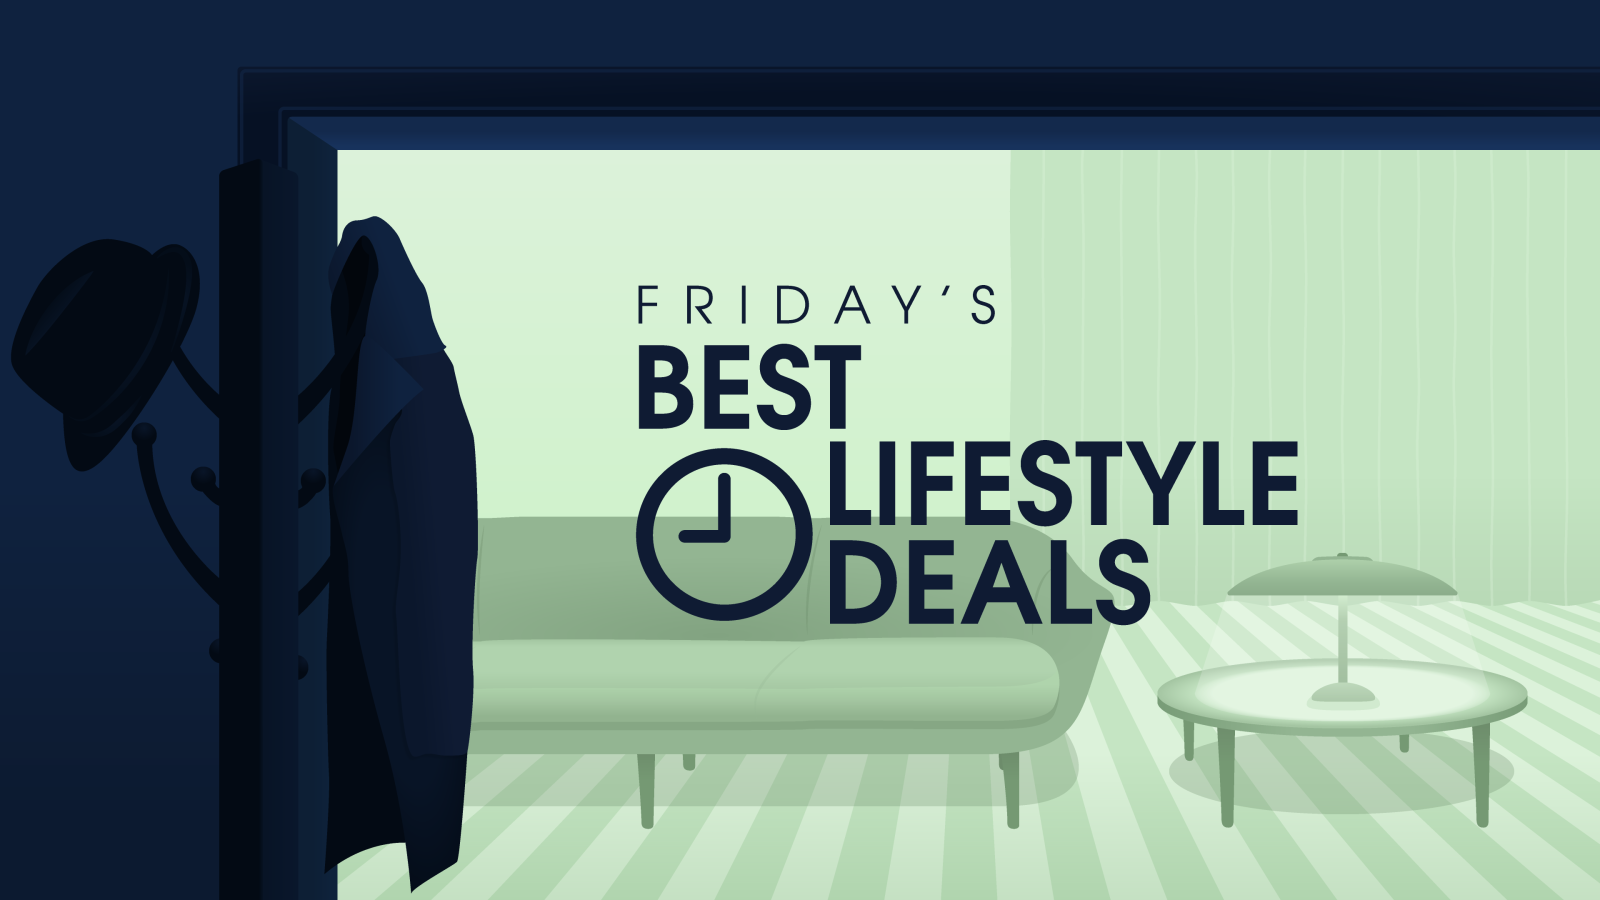 9to5toys new gear reviews and deals fridays best lifestyle deals timbuk2 puma rubbermaid containers more fandeluxe Choice Image